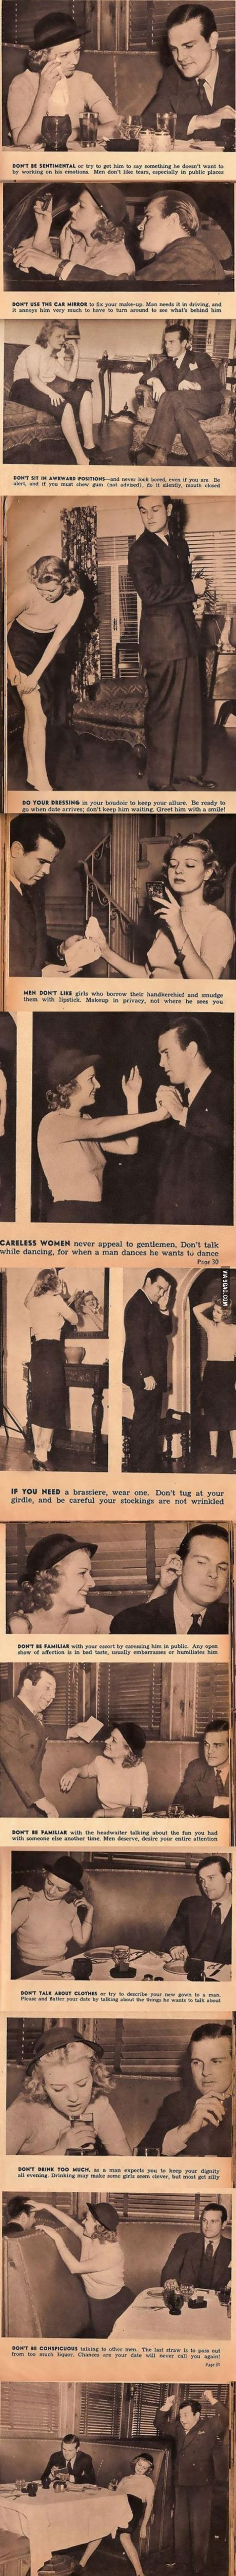 13 Hilarious and Sexist Dating Tips From 1938.